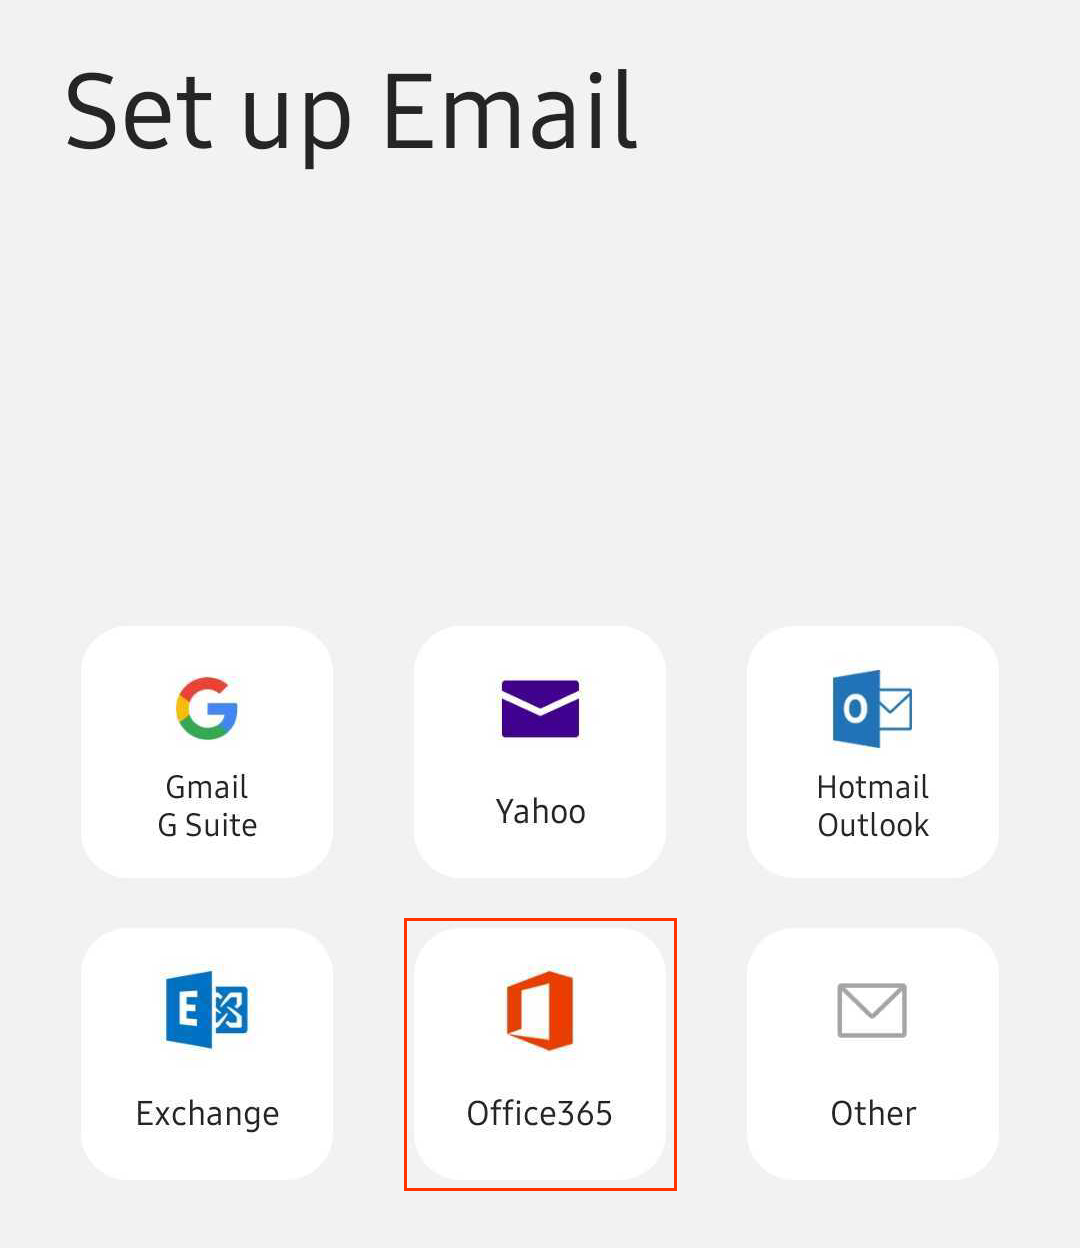 Screen with different email client options including Office 365 with red square